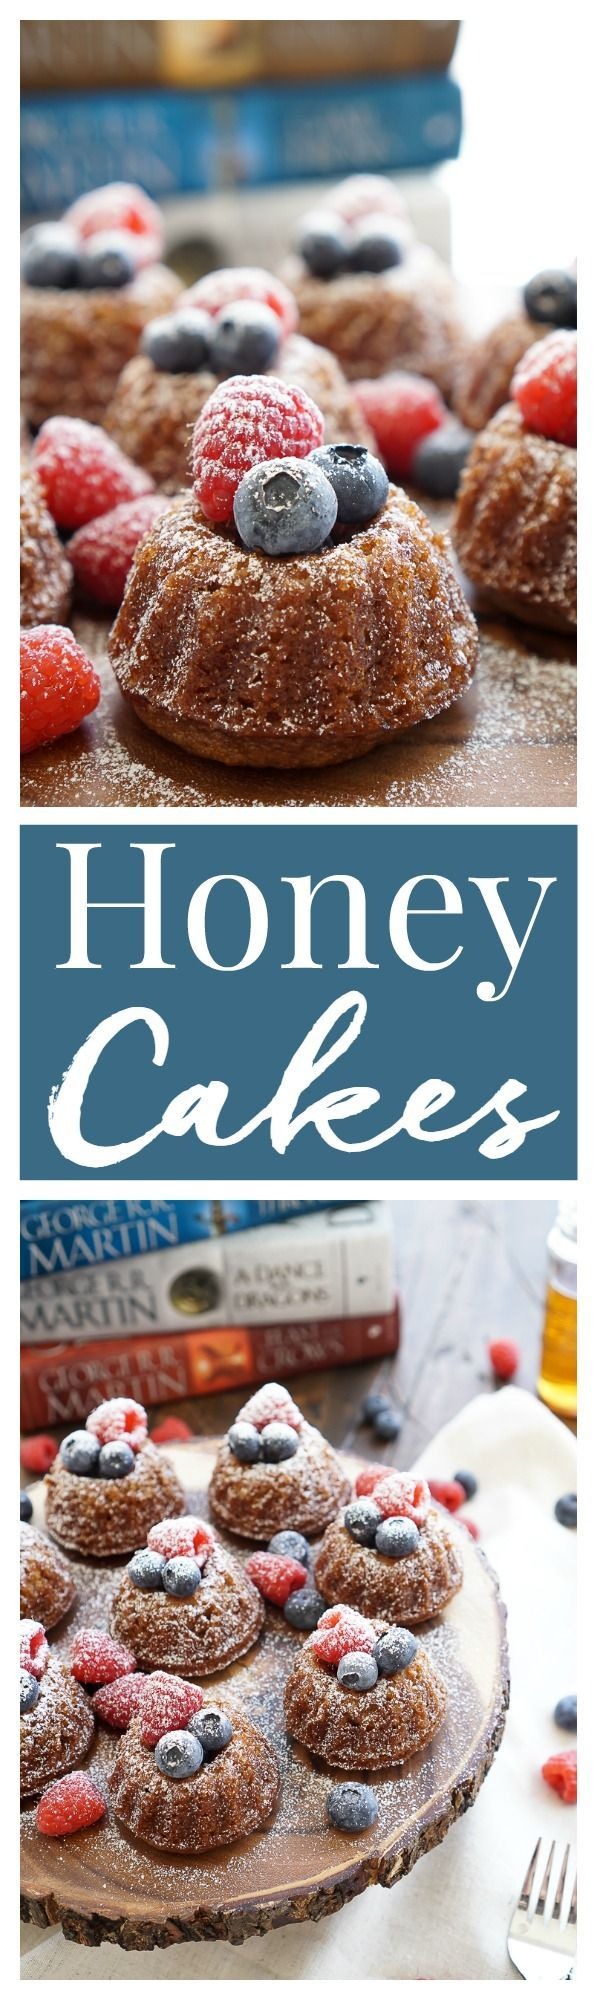 This Game of Thrones Honey Cake recipe can be made up ahead of time and is loaded with comforting flavors like honey, cinnamon, and nutmeg and laced with coffee, orange juice, and bourbon.